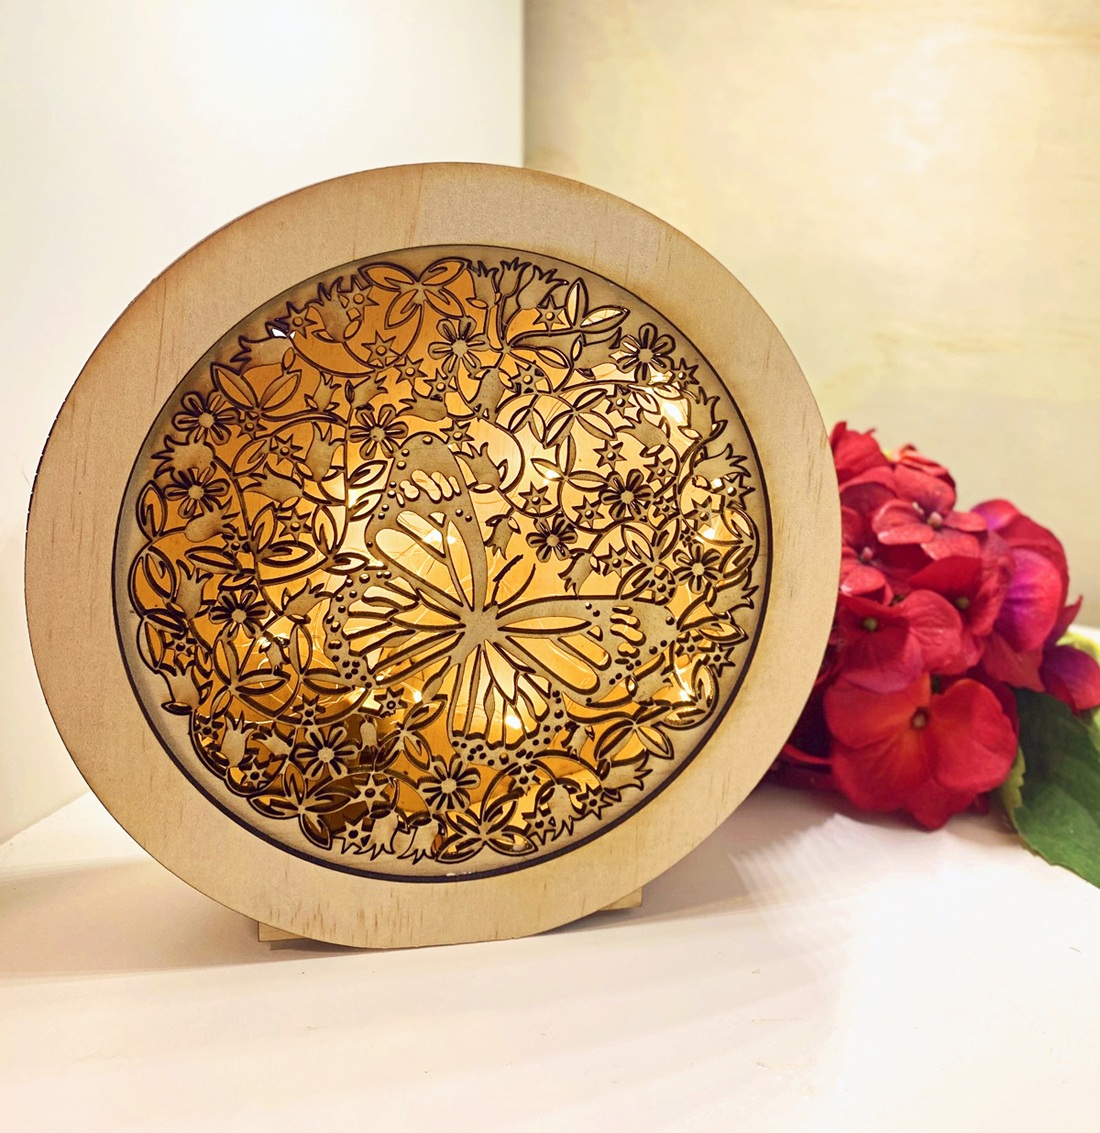 An intricately laser-cut round timber lightbox in a butterfly and floral design, created by Crafty Weasel